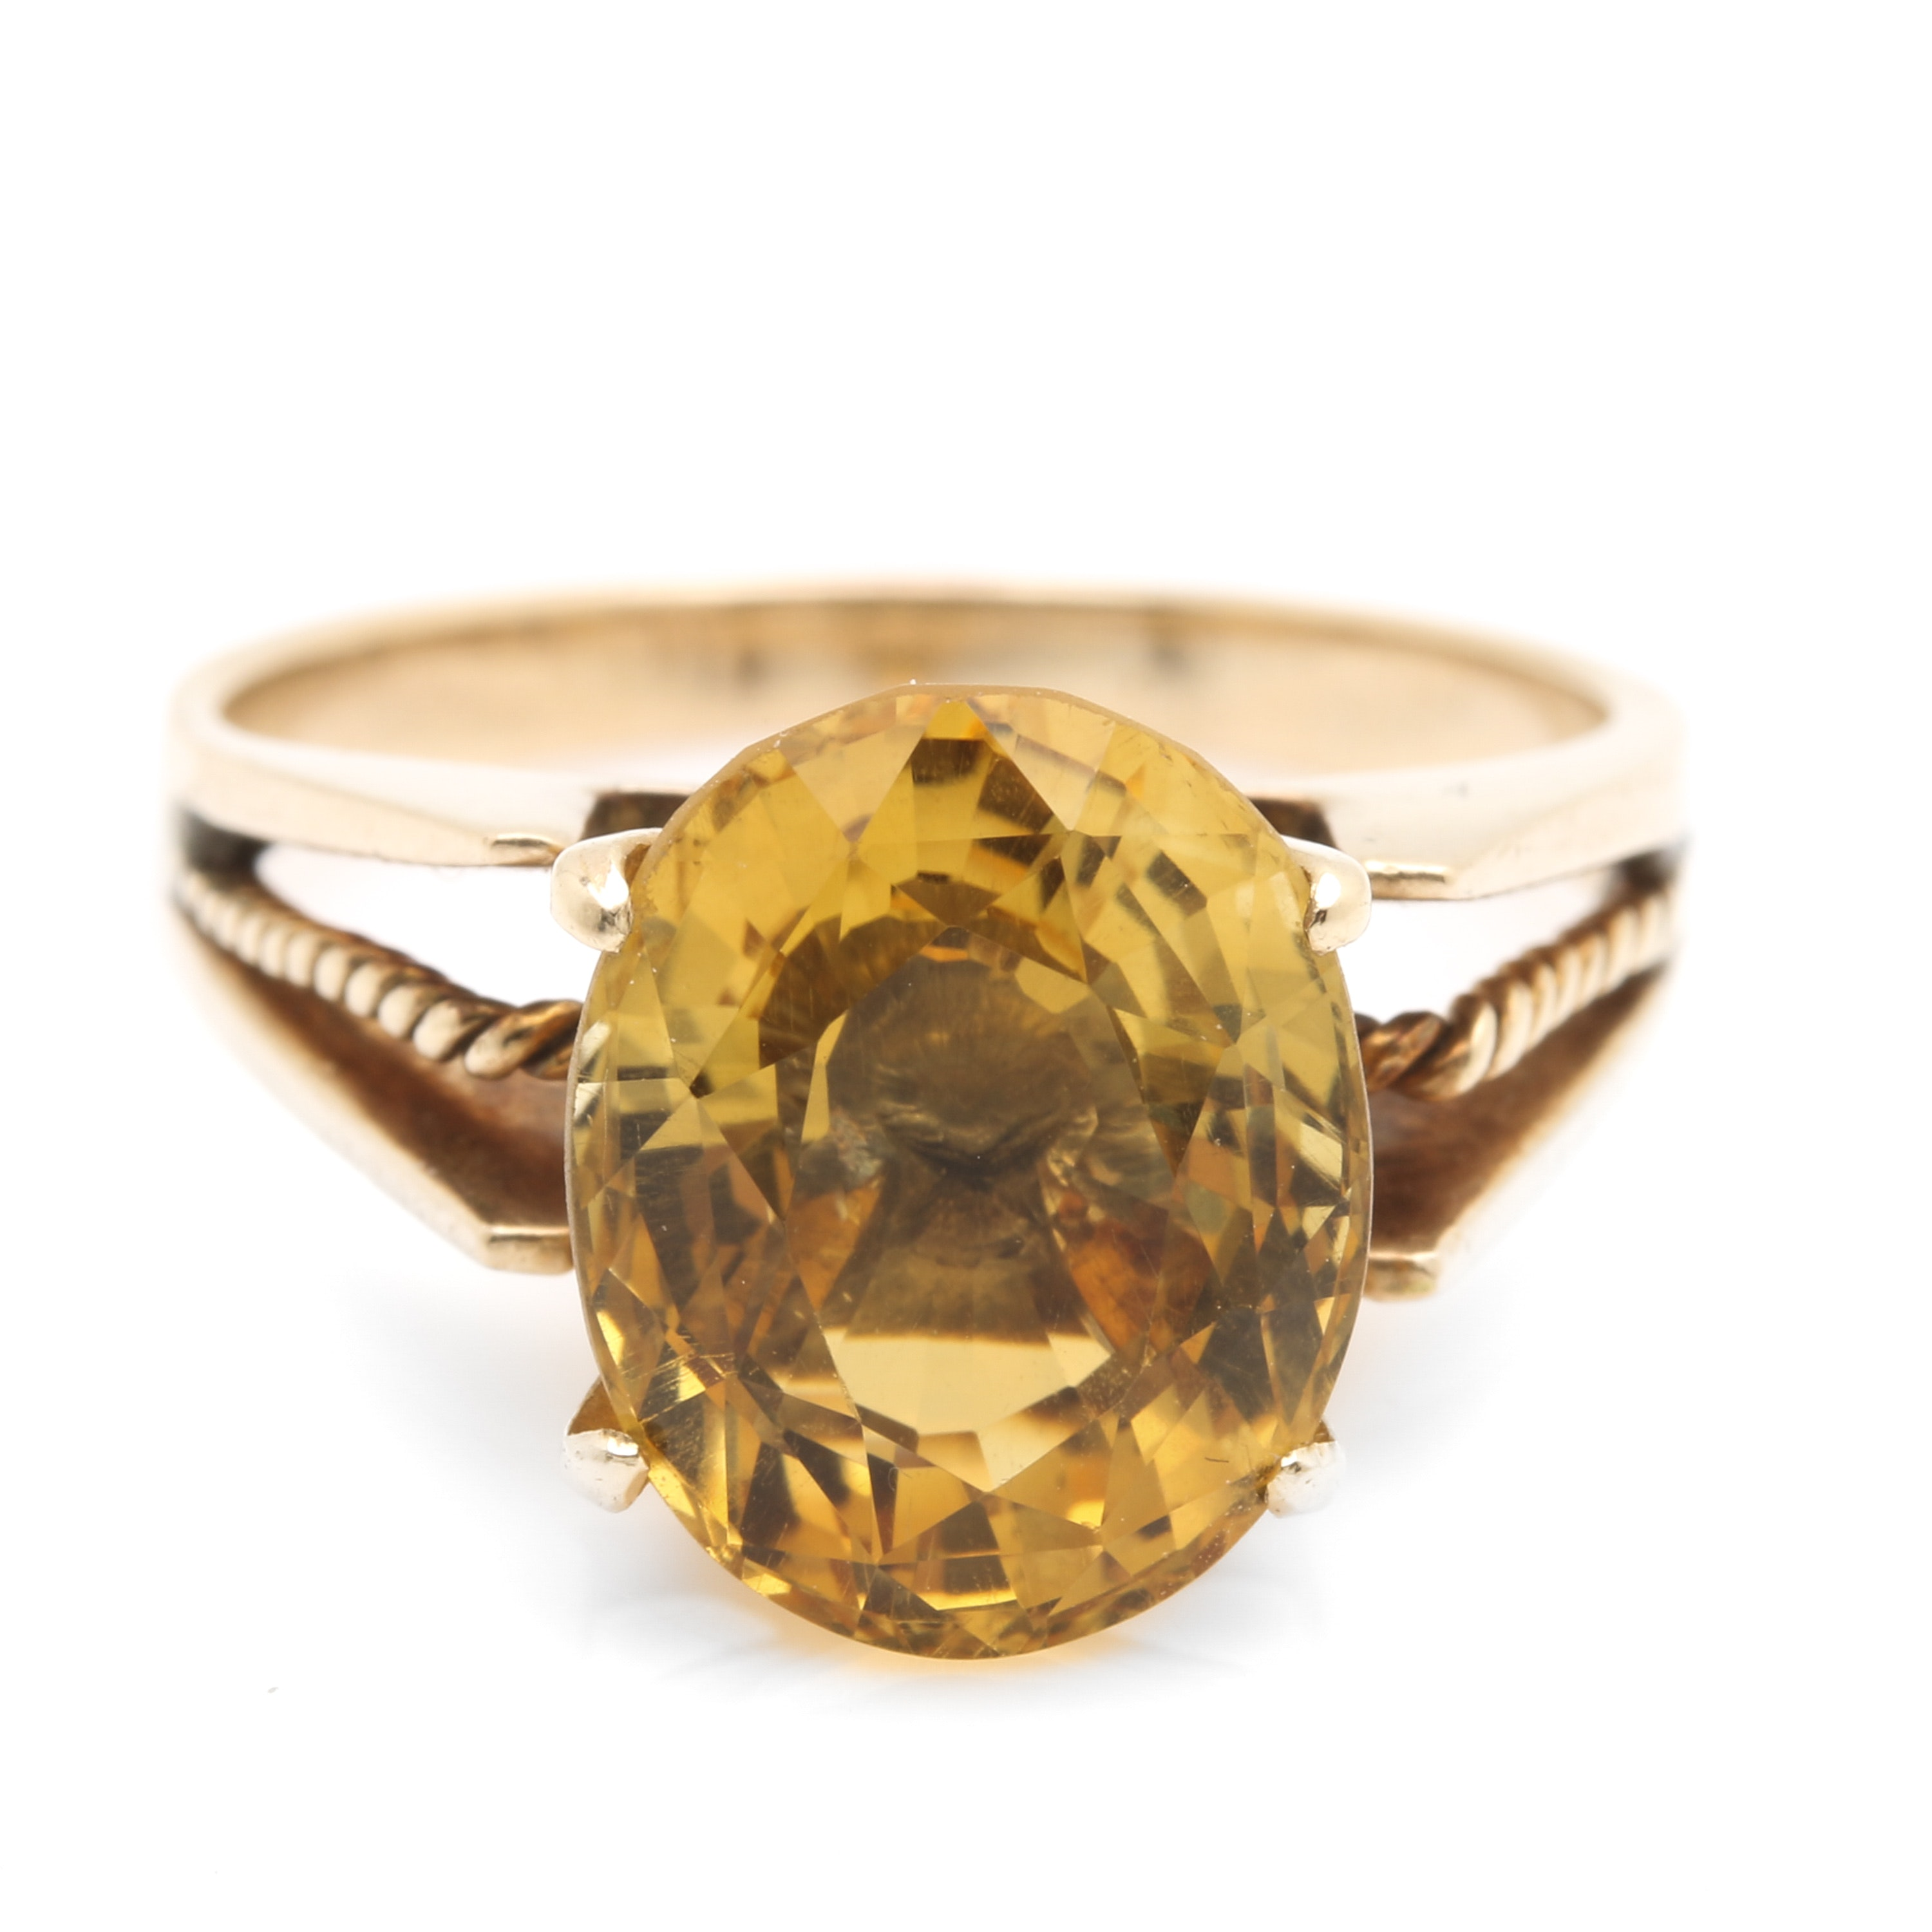 10K Yellow Gold 3.87 CT Citrine Solitaire Ring